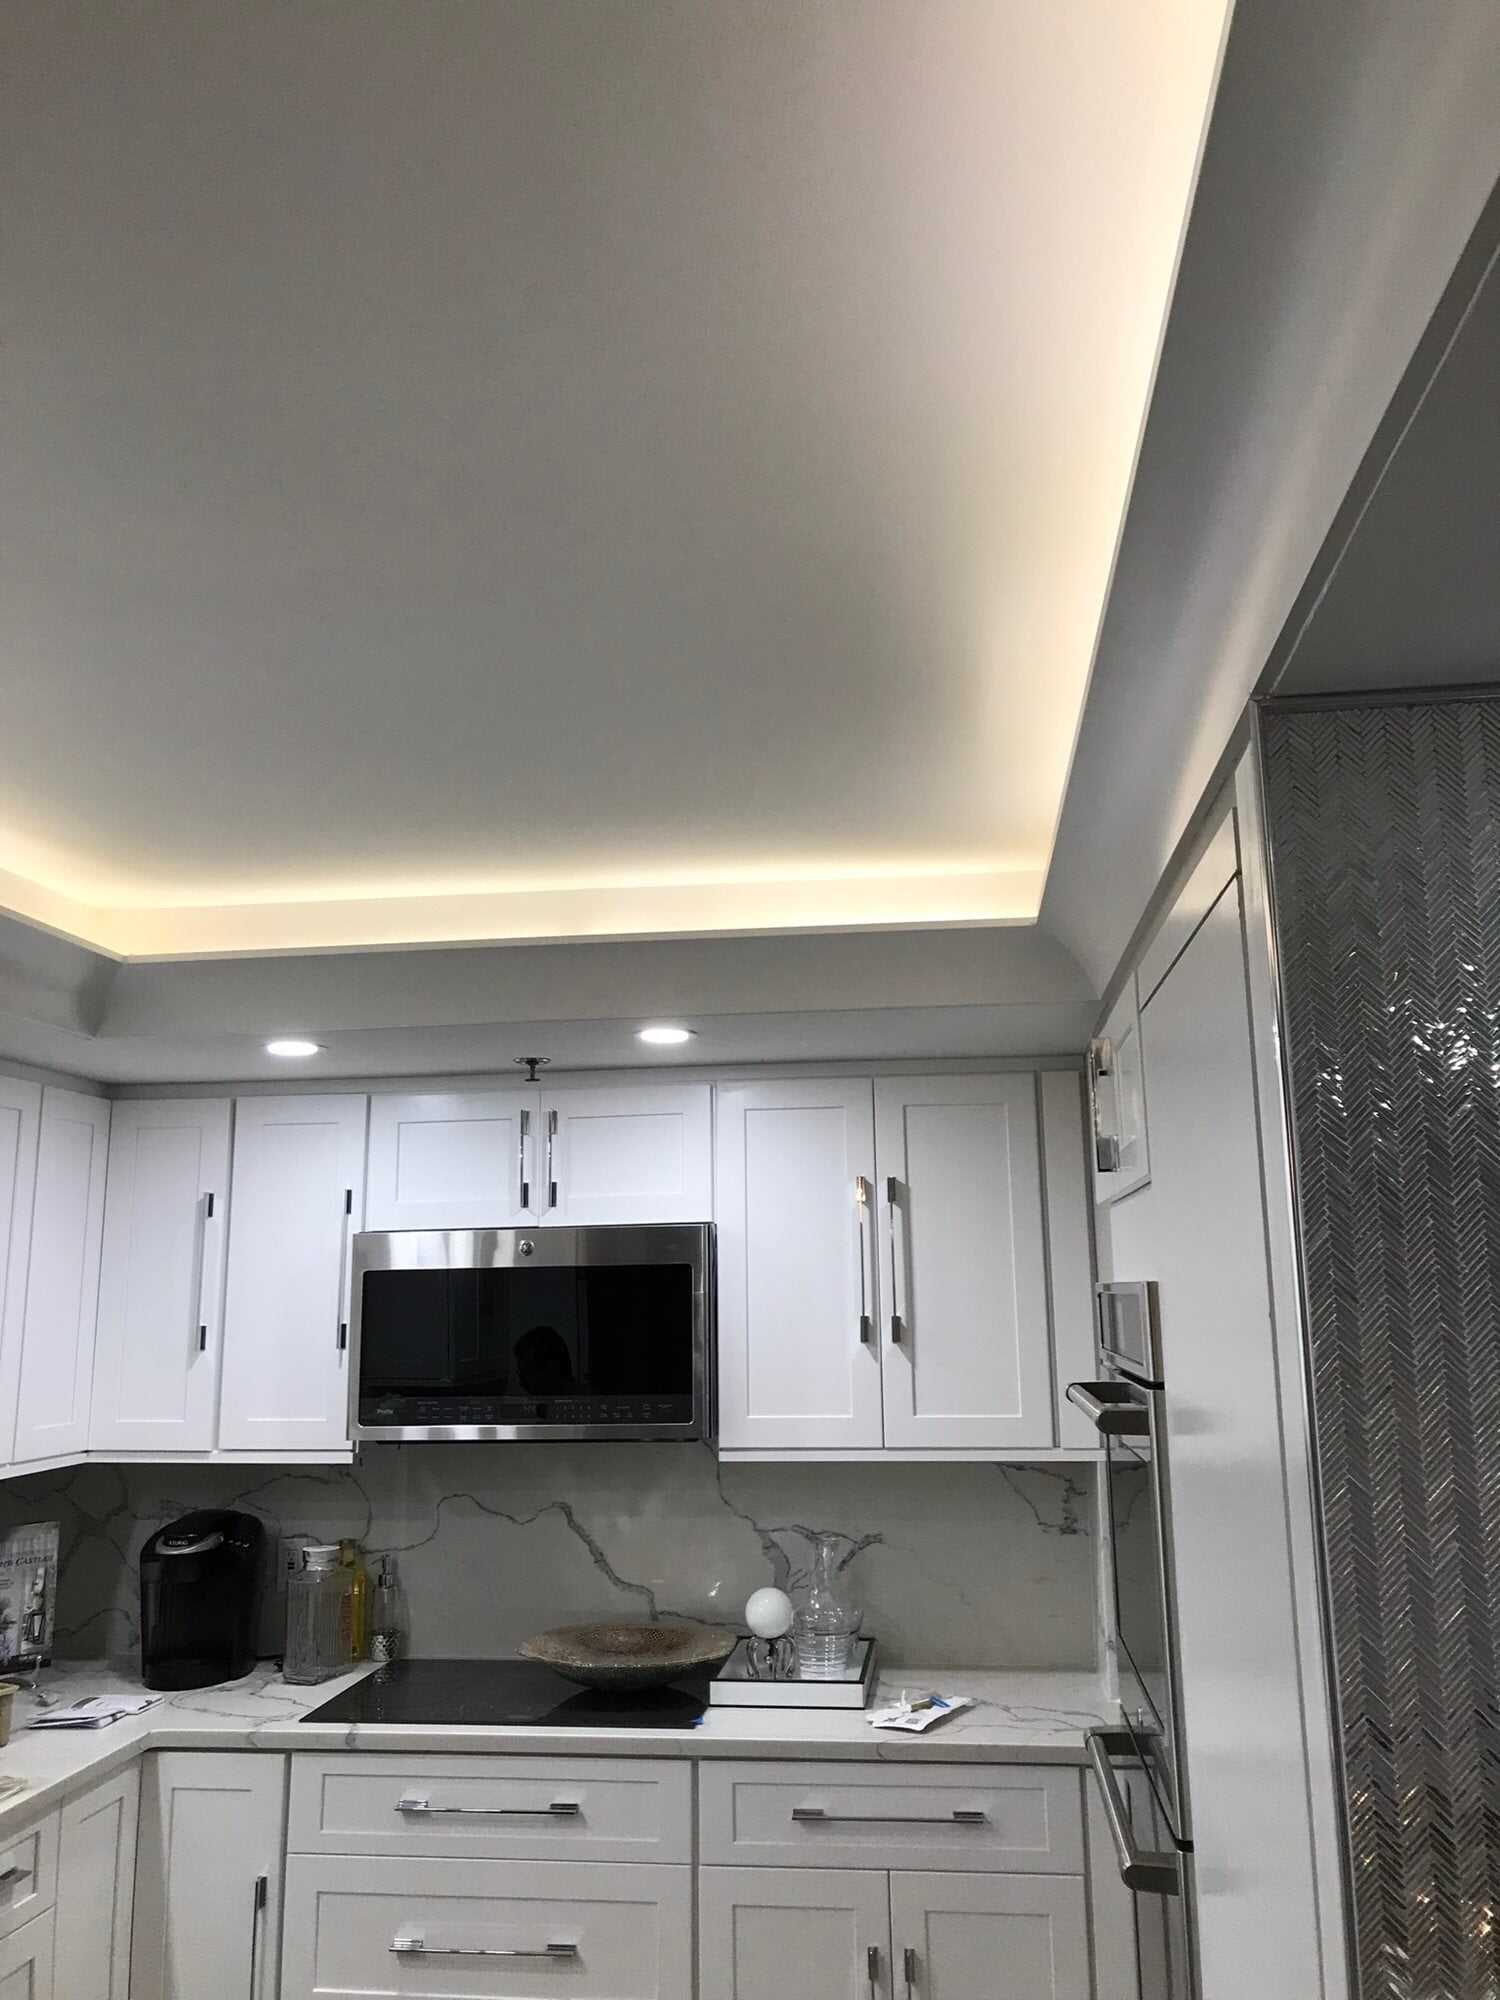 Recessed kitchen lighting in Juno Beach, FL from Floors For You Kitchen & Bath